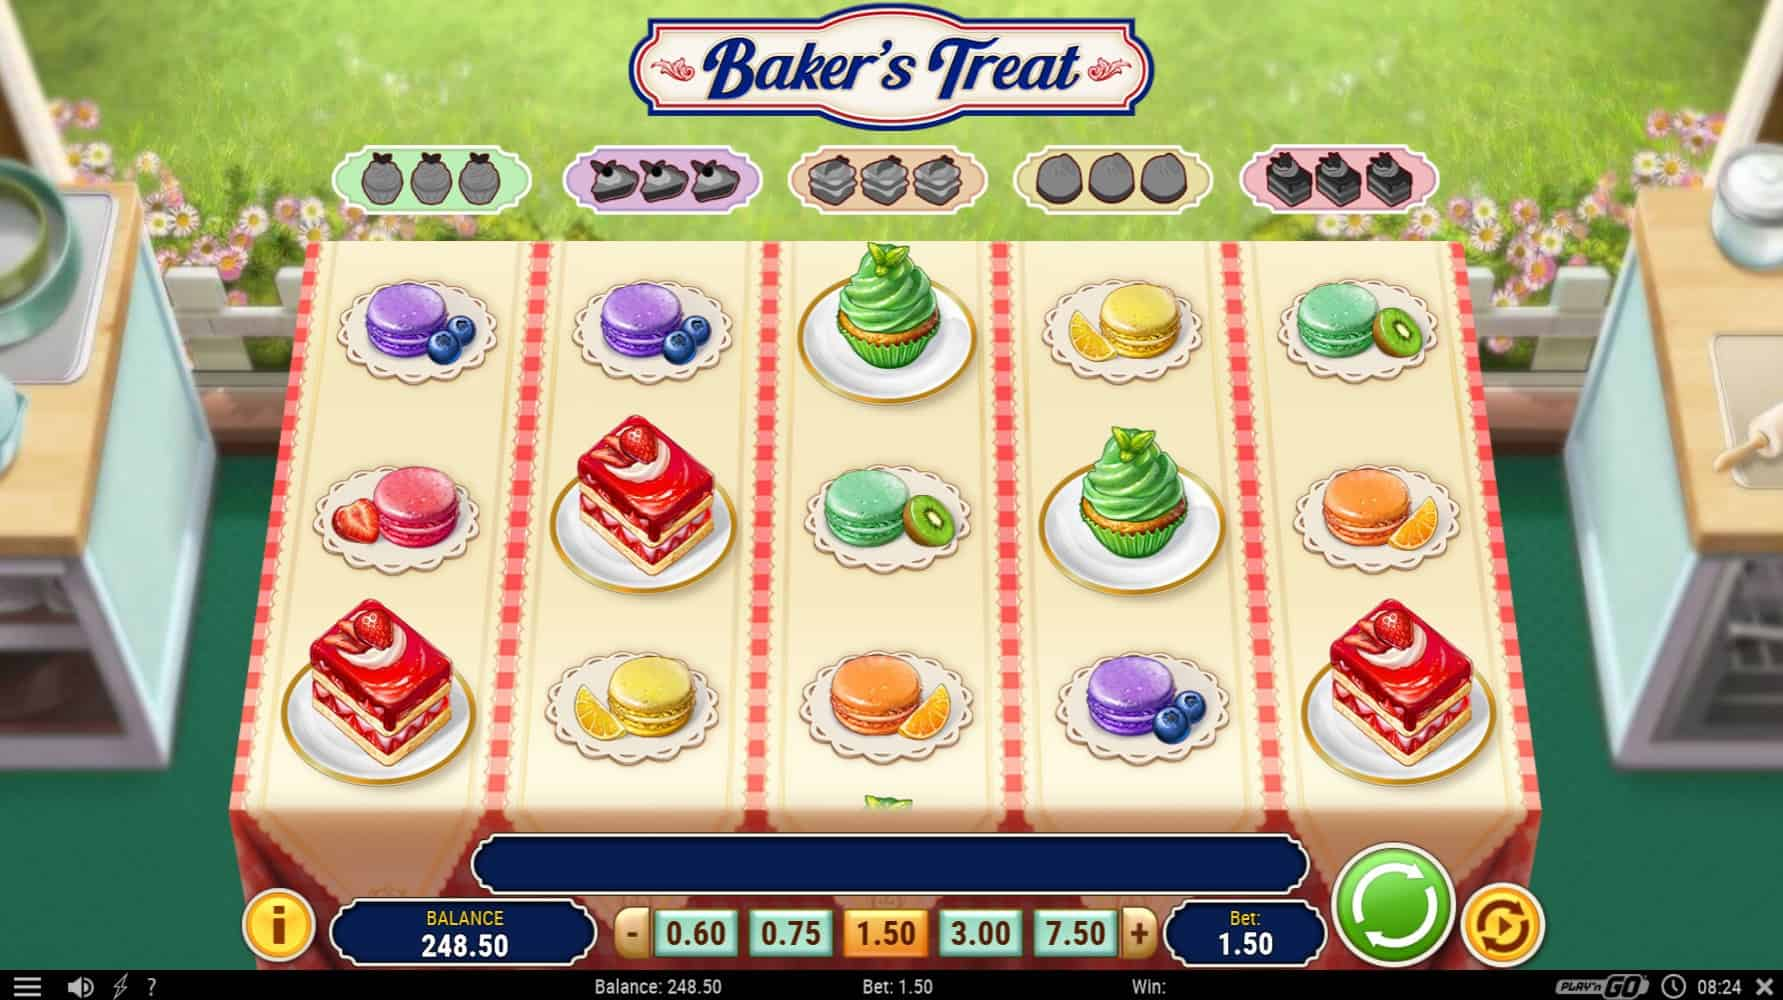 play'n go - baker's treat - reels - casinogroundsdotcom